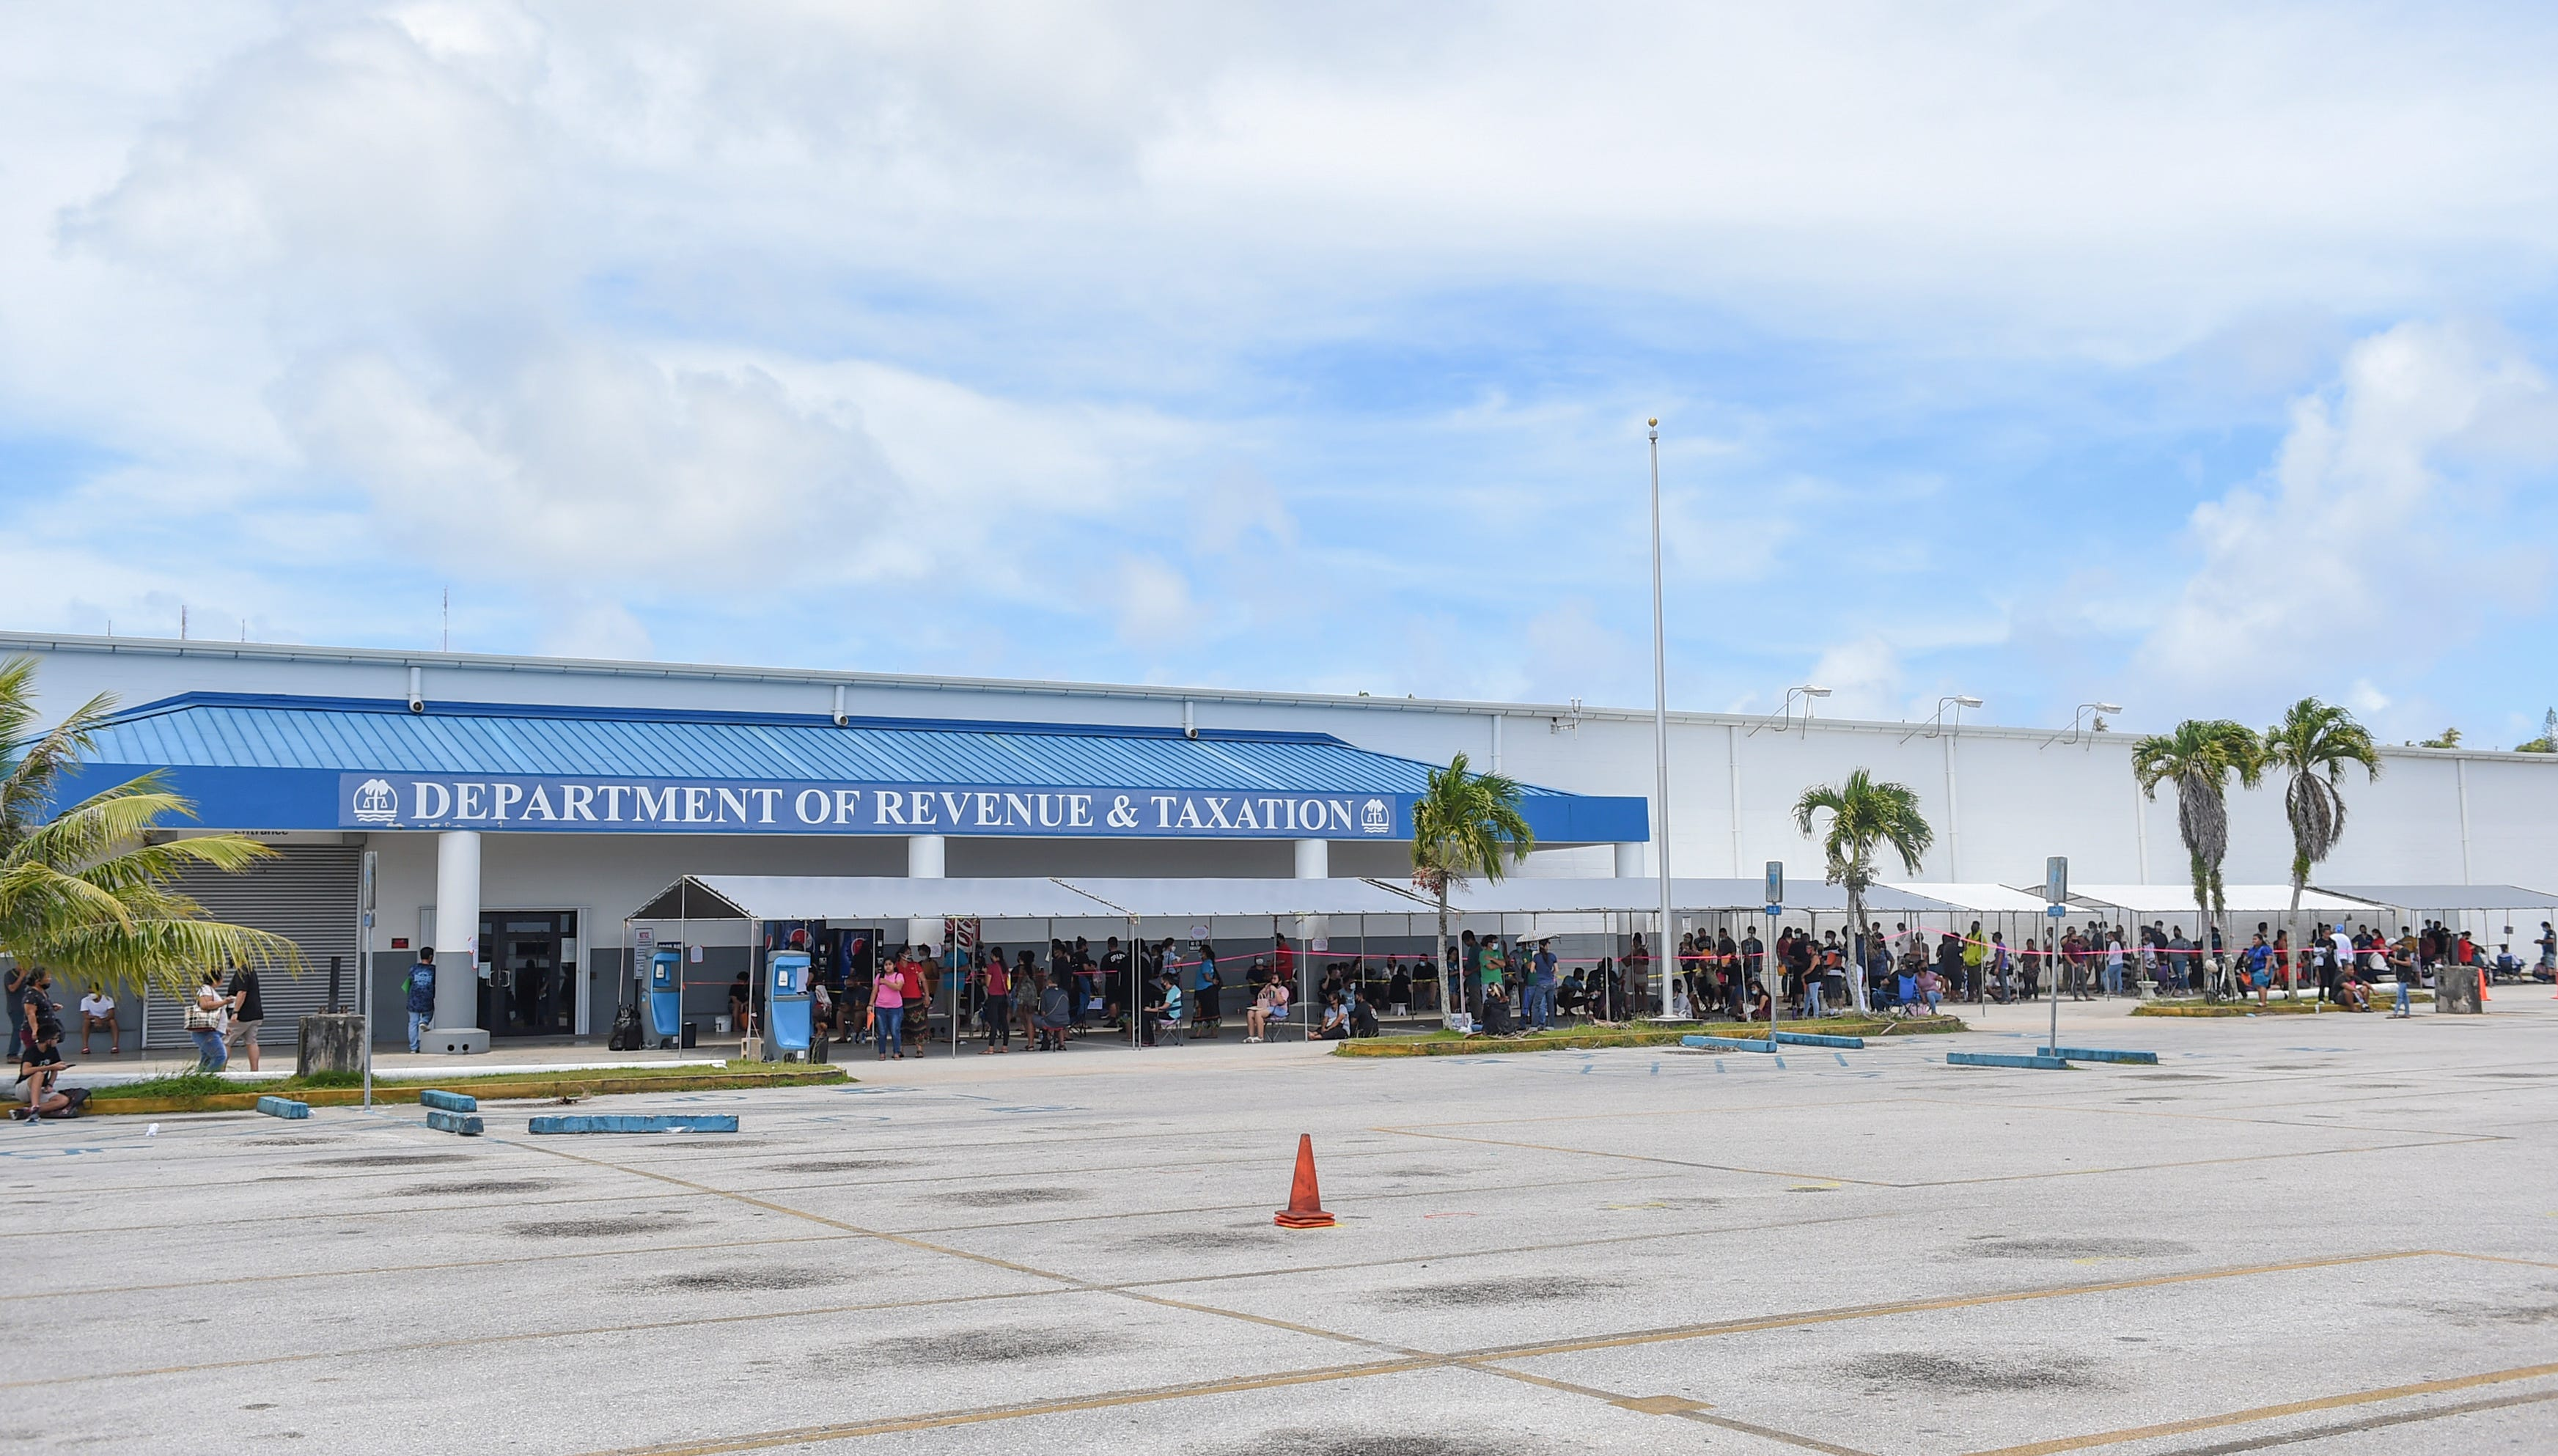 Lines for driver's licenses form during a Saturday opening for the Guam Department of Revenue and Taxation in Barrigada in this June 20 file photo.